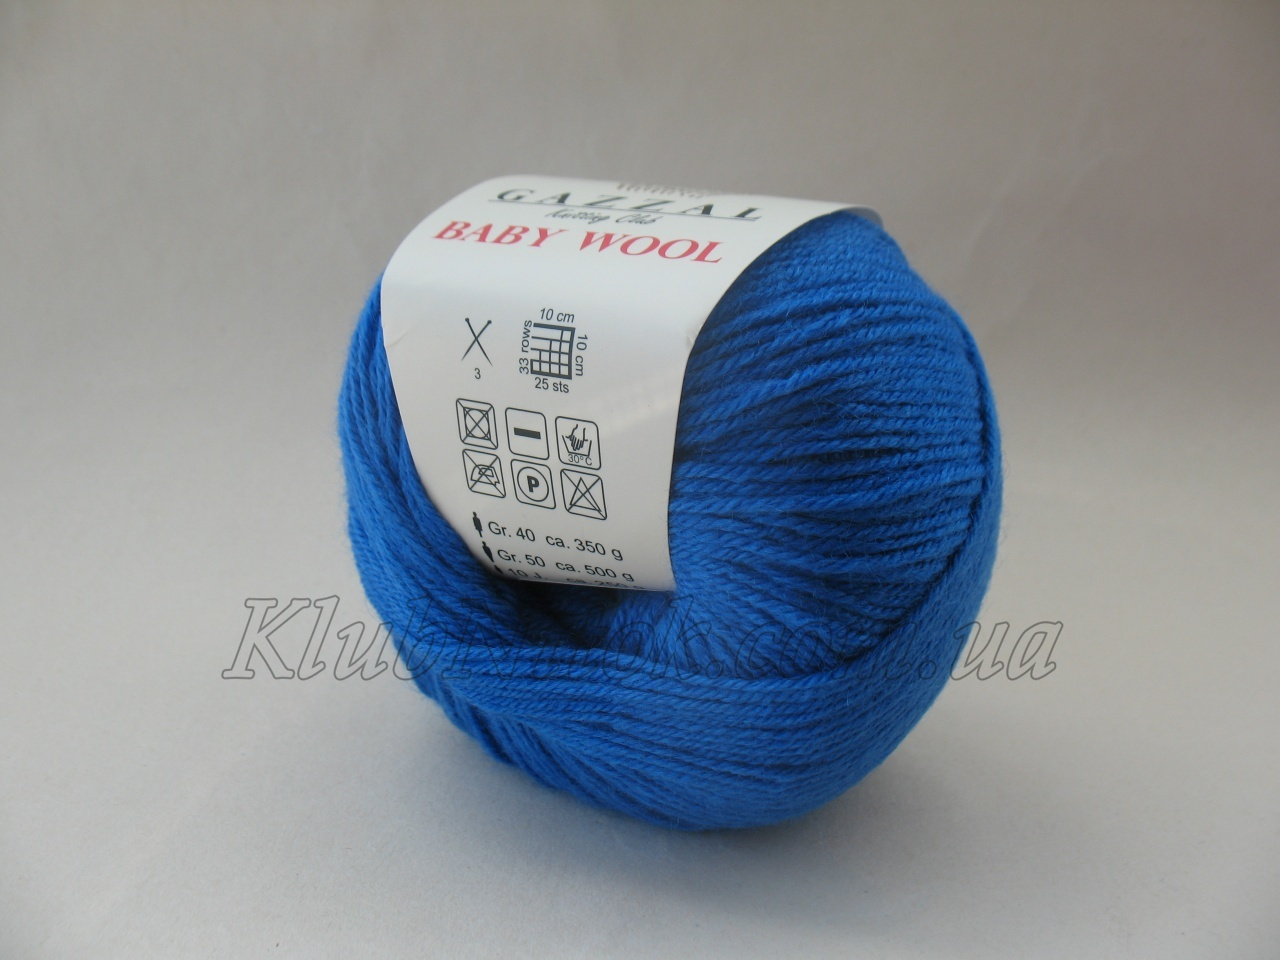 Baby wool 830